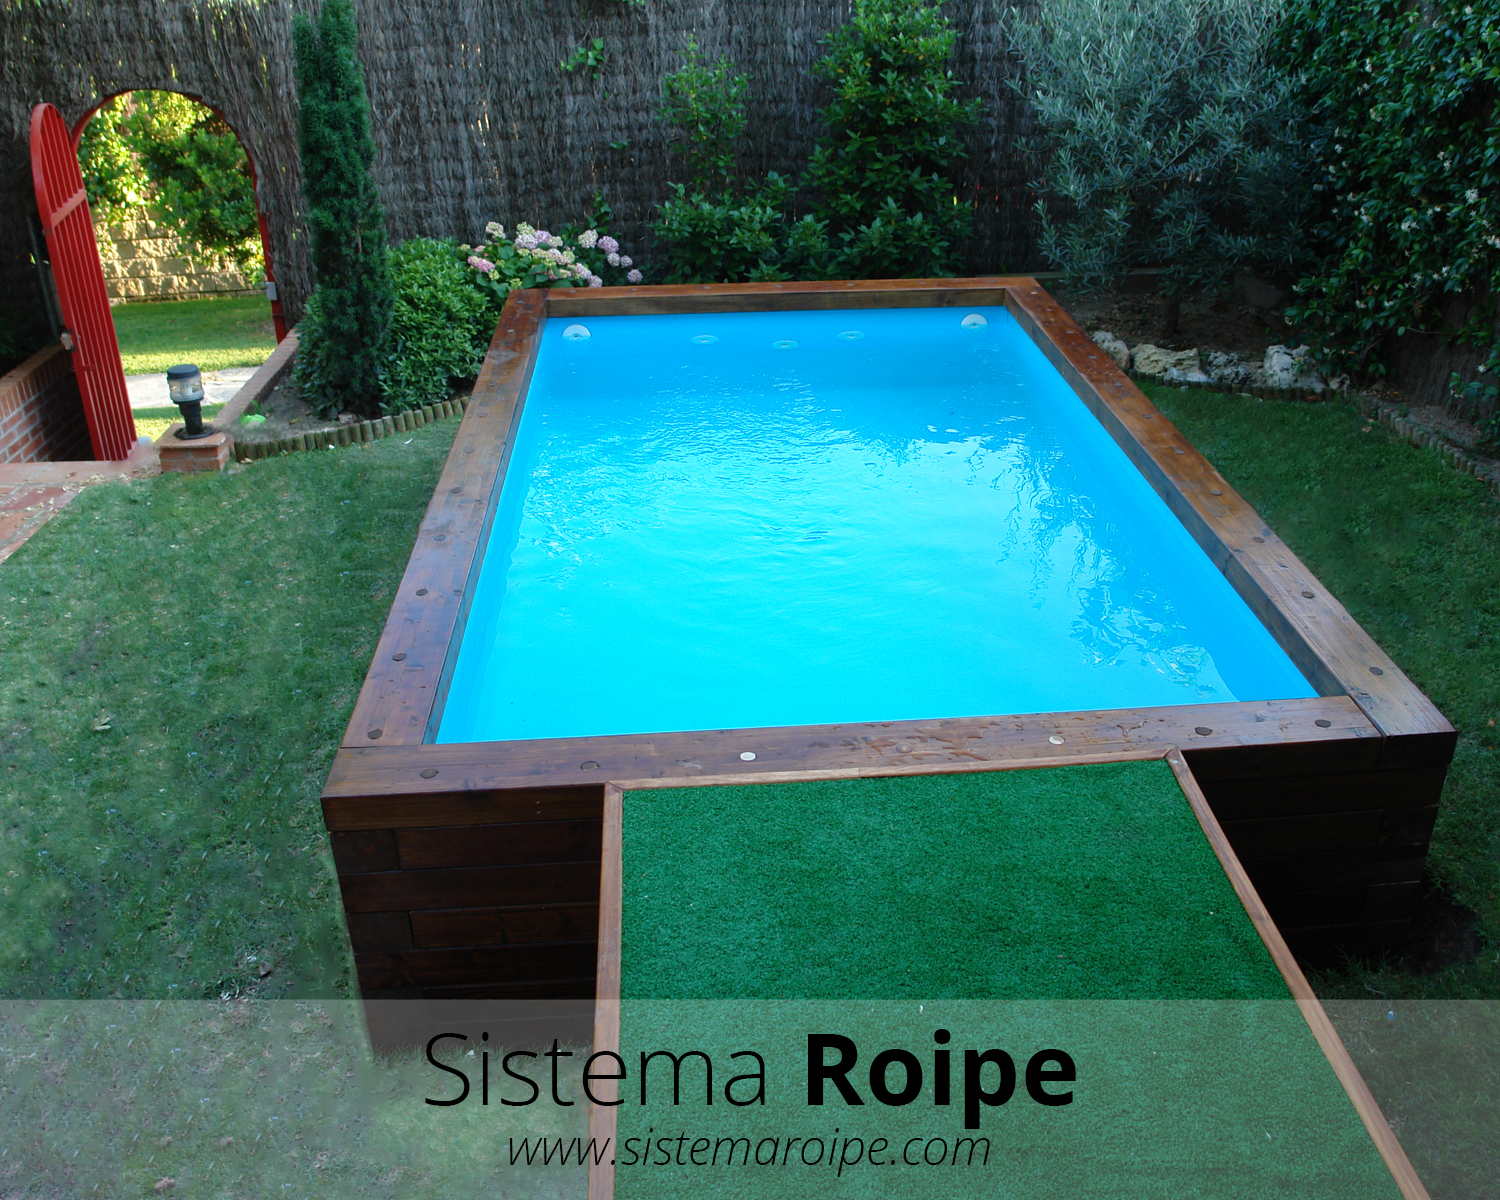 Sistema roipe for Piscina hinchable cuadrada